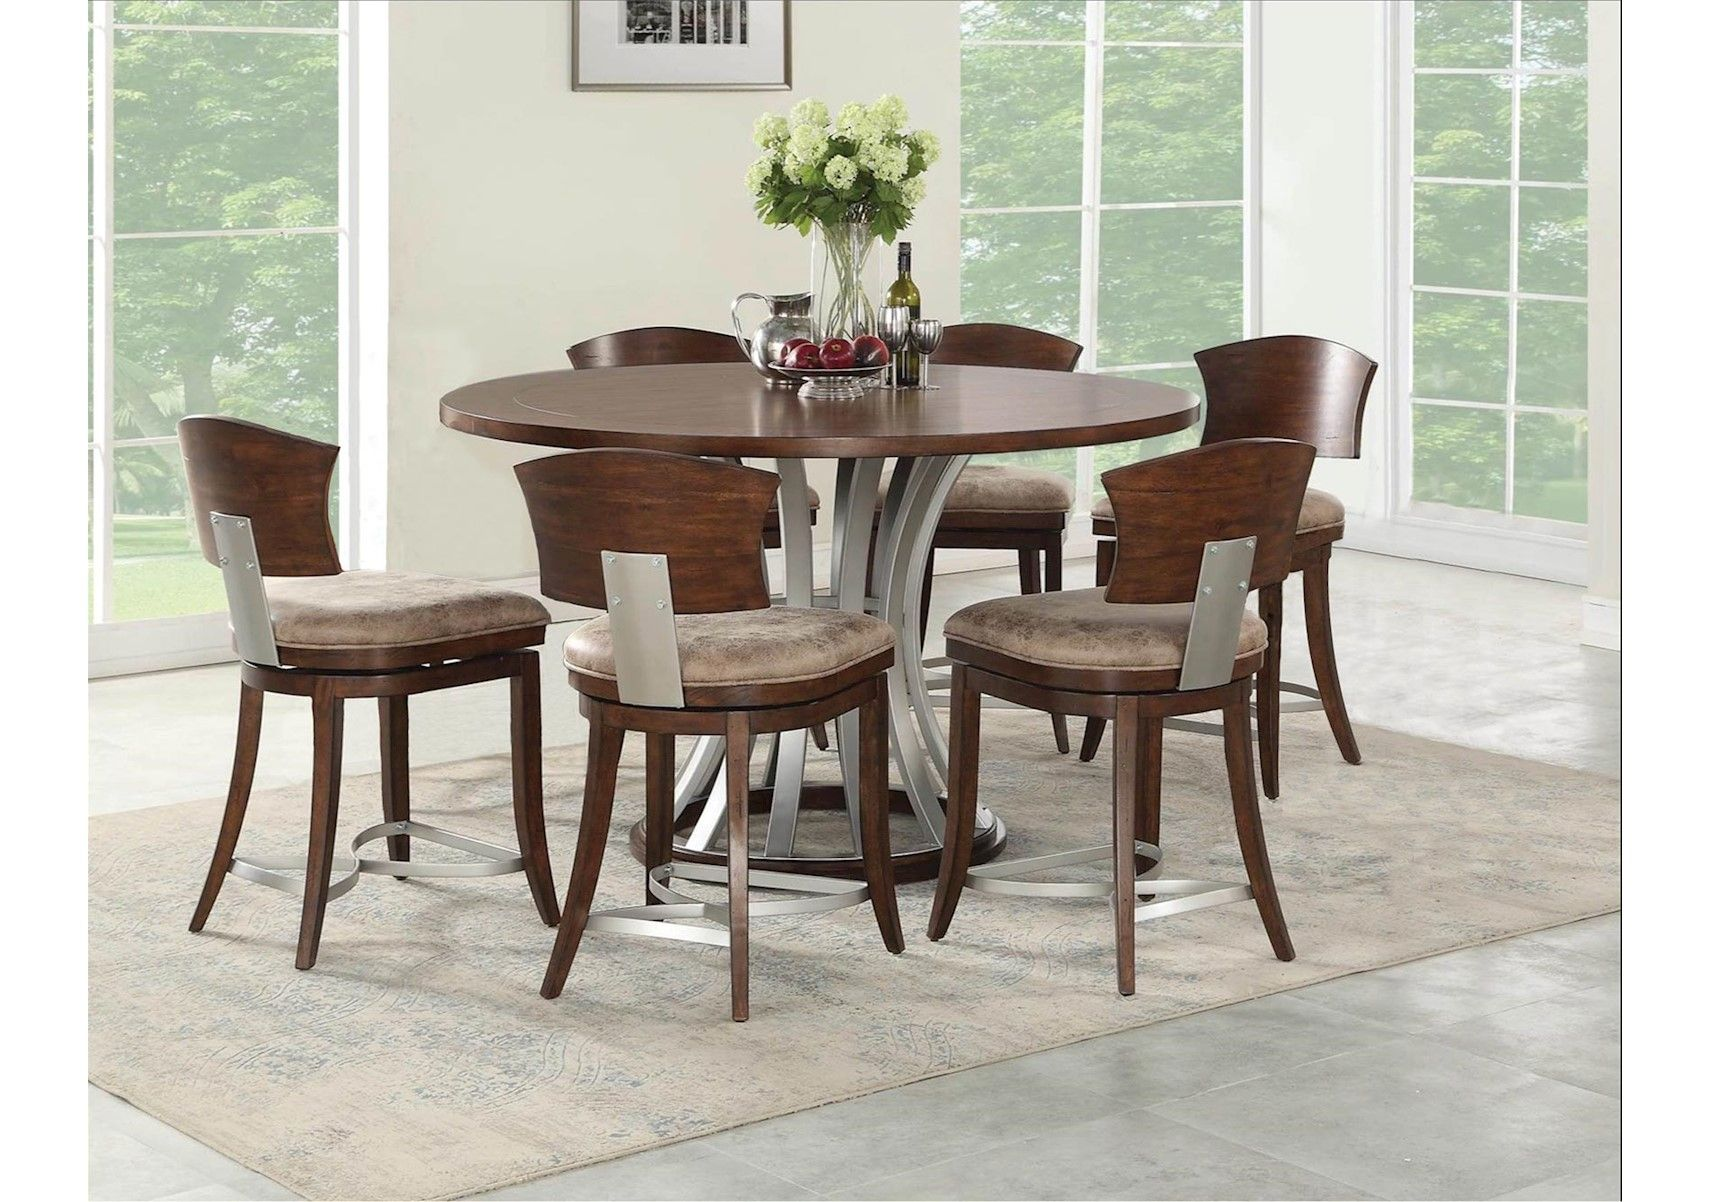 Lacks Oxford Hills 7 Pc Counter Height Dining Set Counter